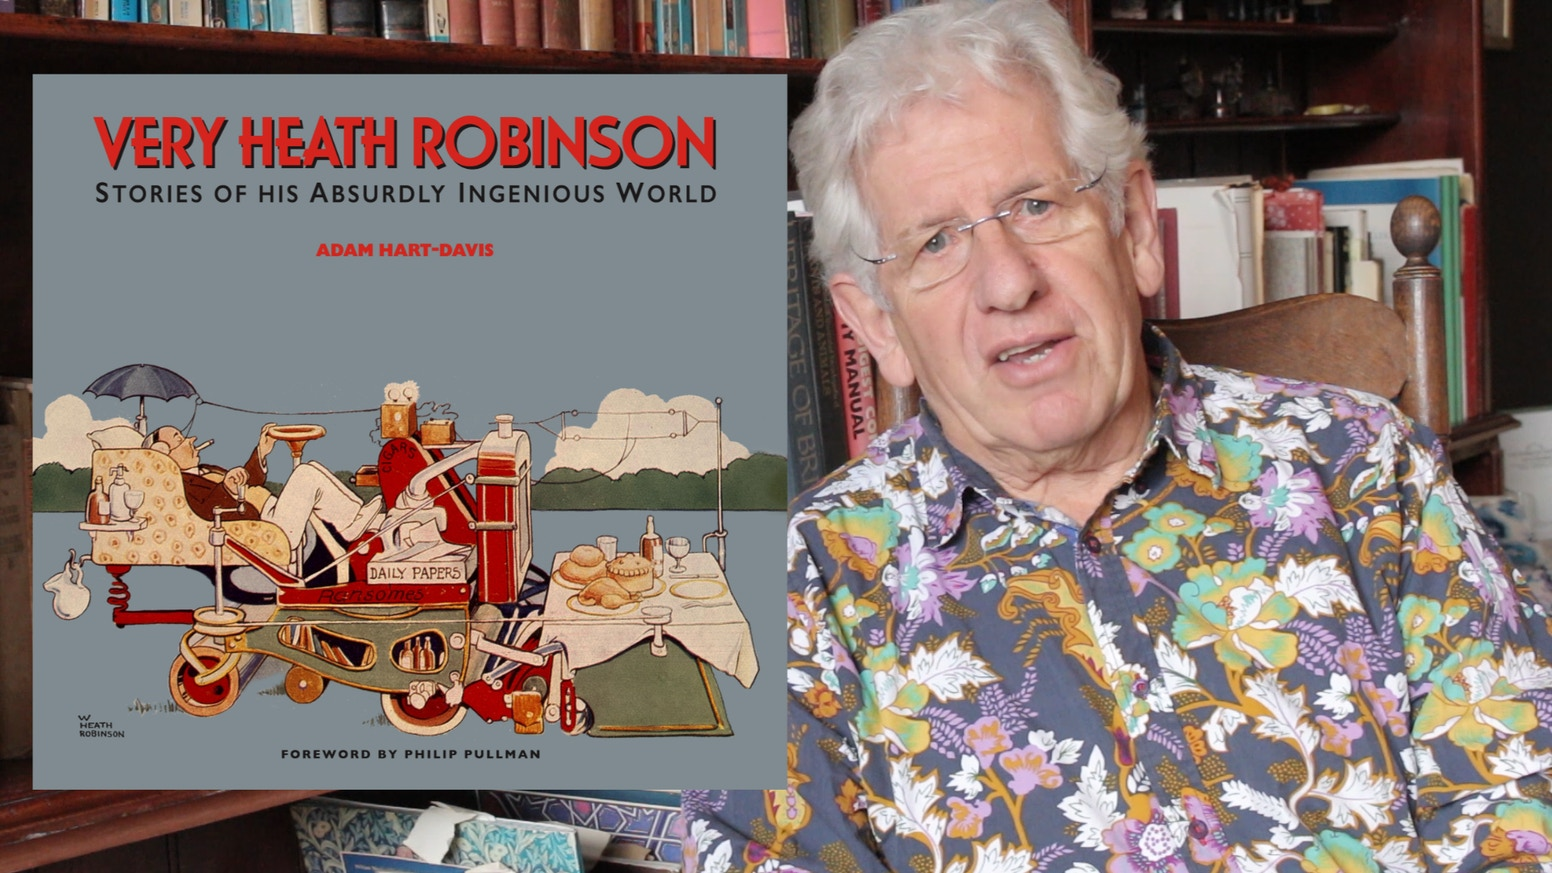 Let Adam Hart-Davis tell you the stories behind Heath Robinson's fanciful inventions, from the de luxe mower to the threesome bath.